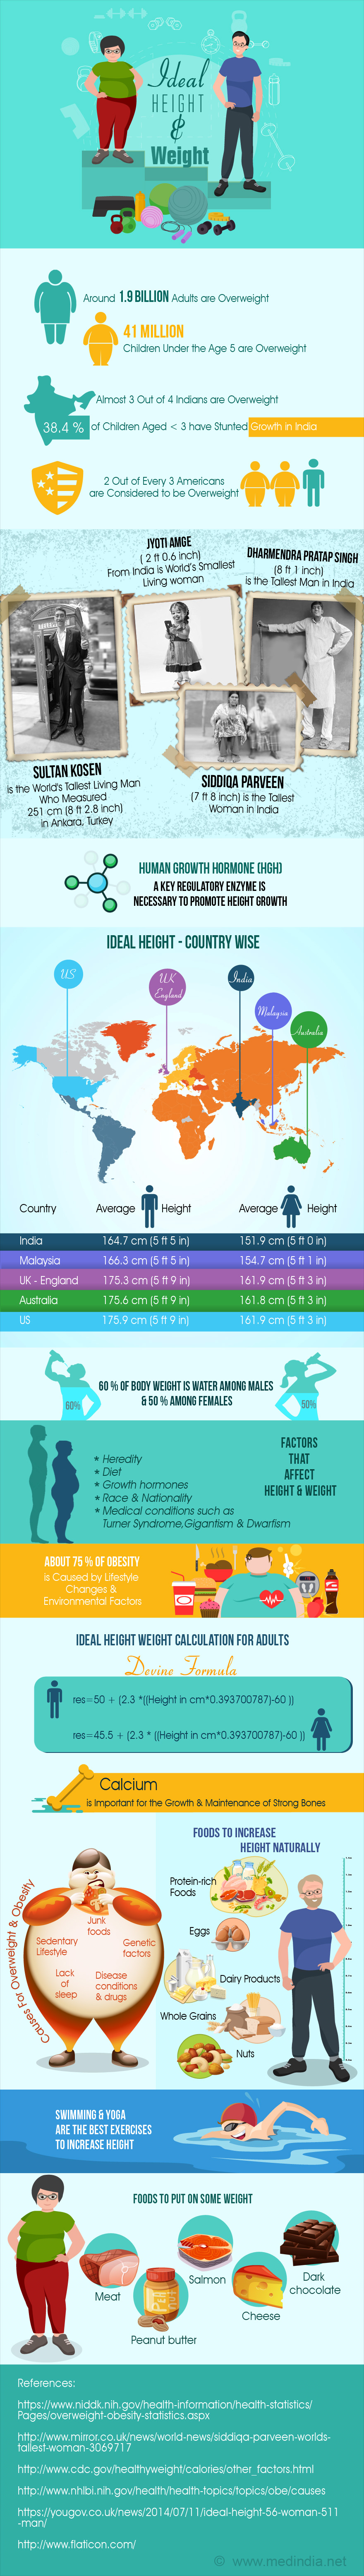 Ideal Height and Weight - Infographic